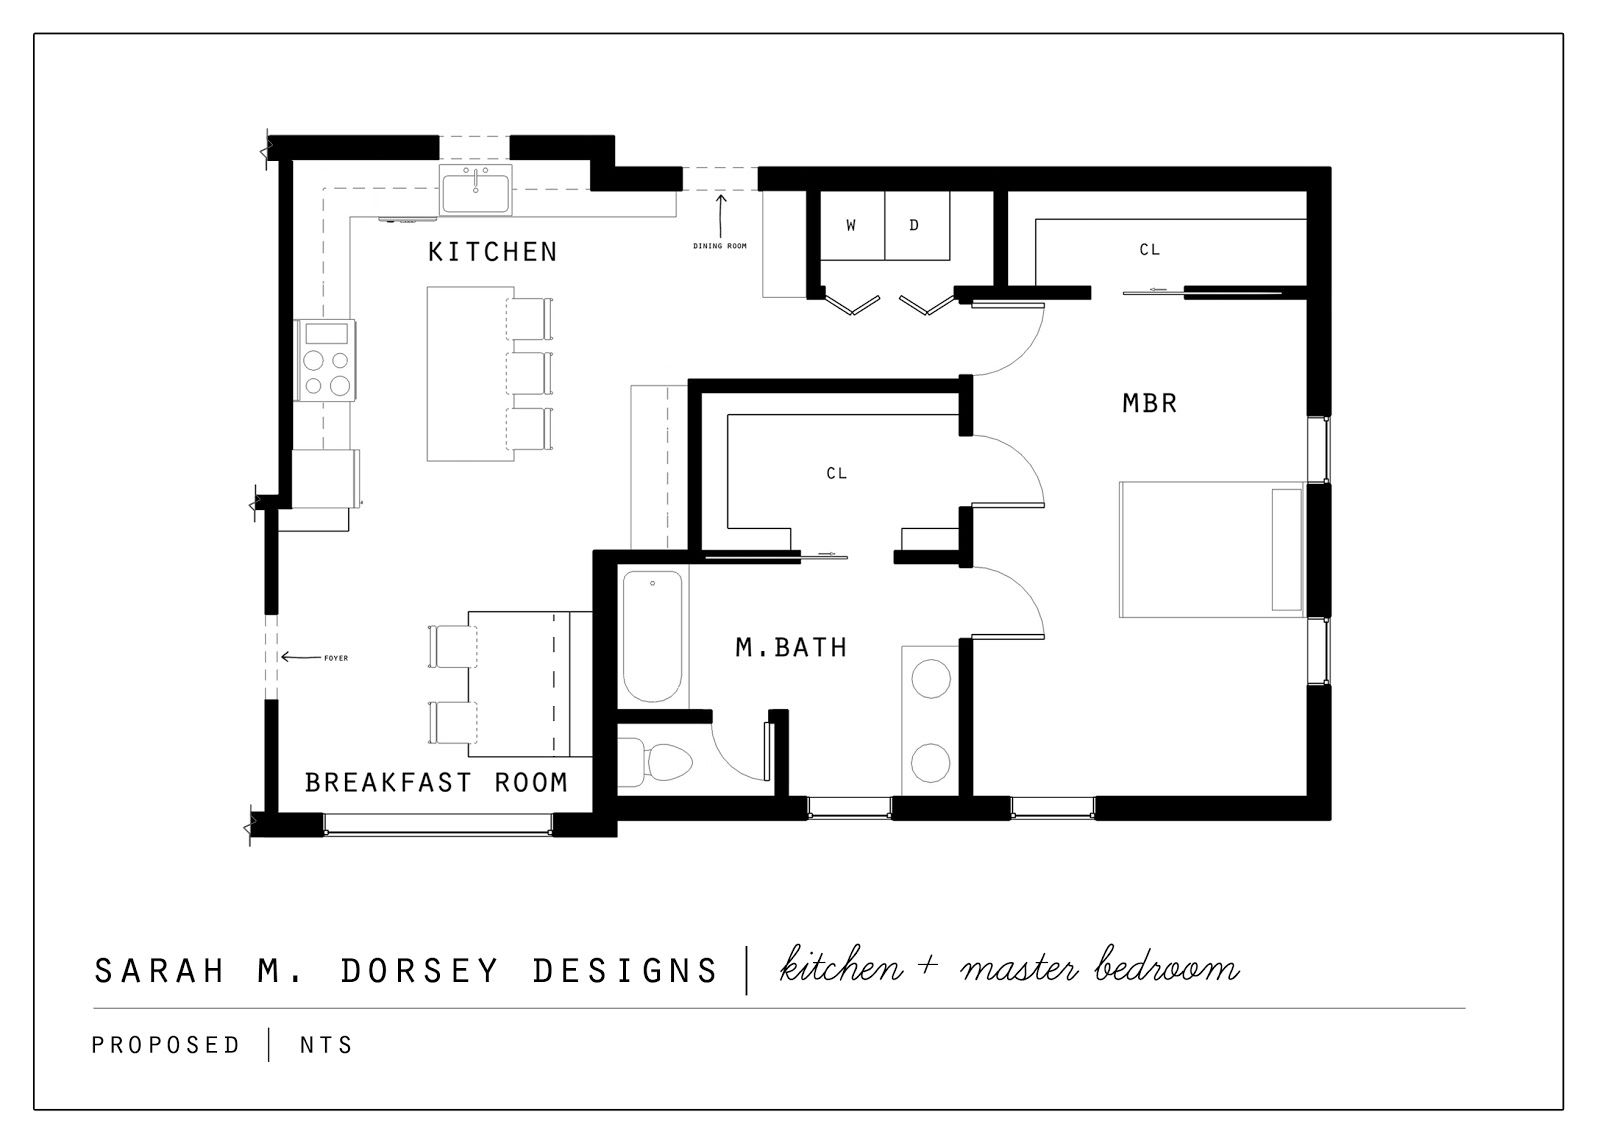 Floor plans for master bedroom additions bedroom addition plans master bedroom suite addition Master bedroom with toilet design